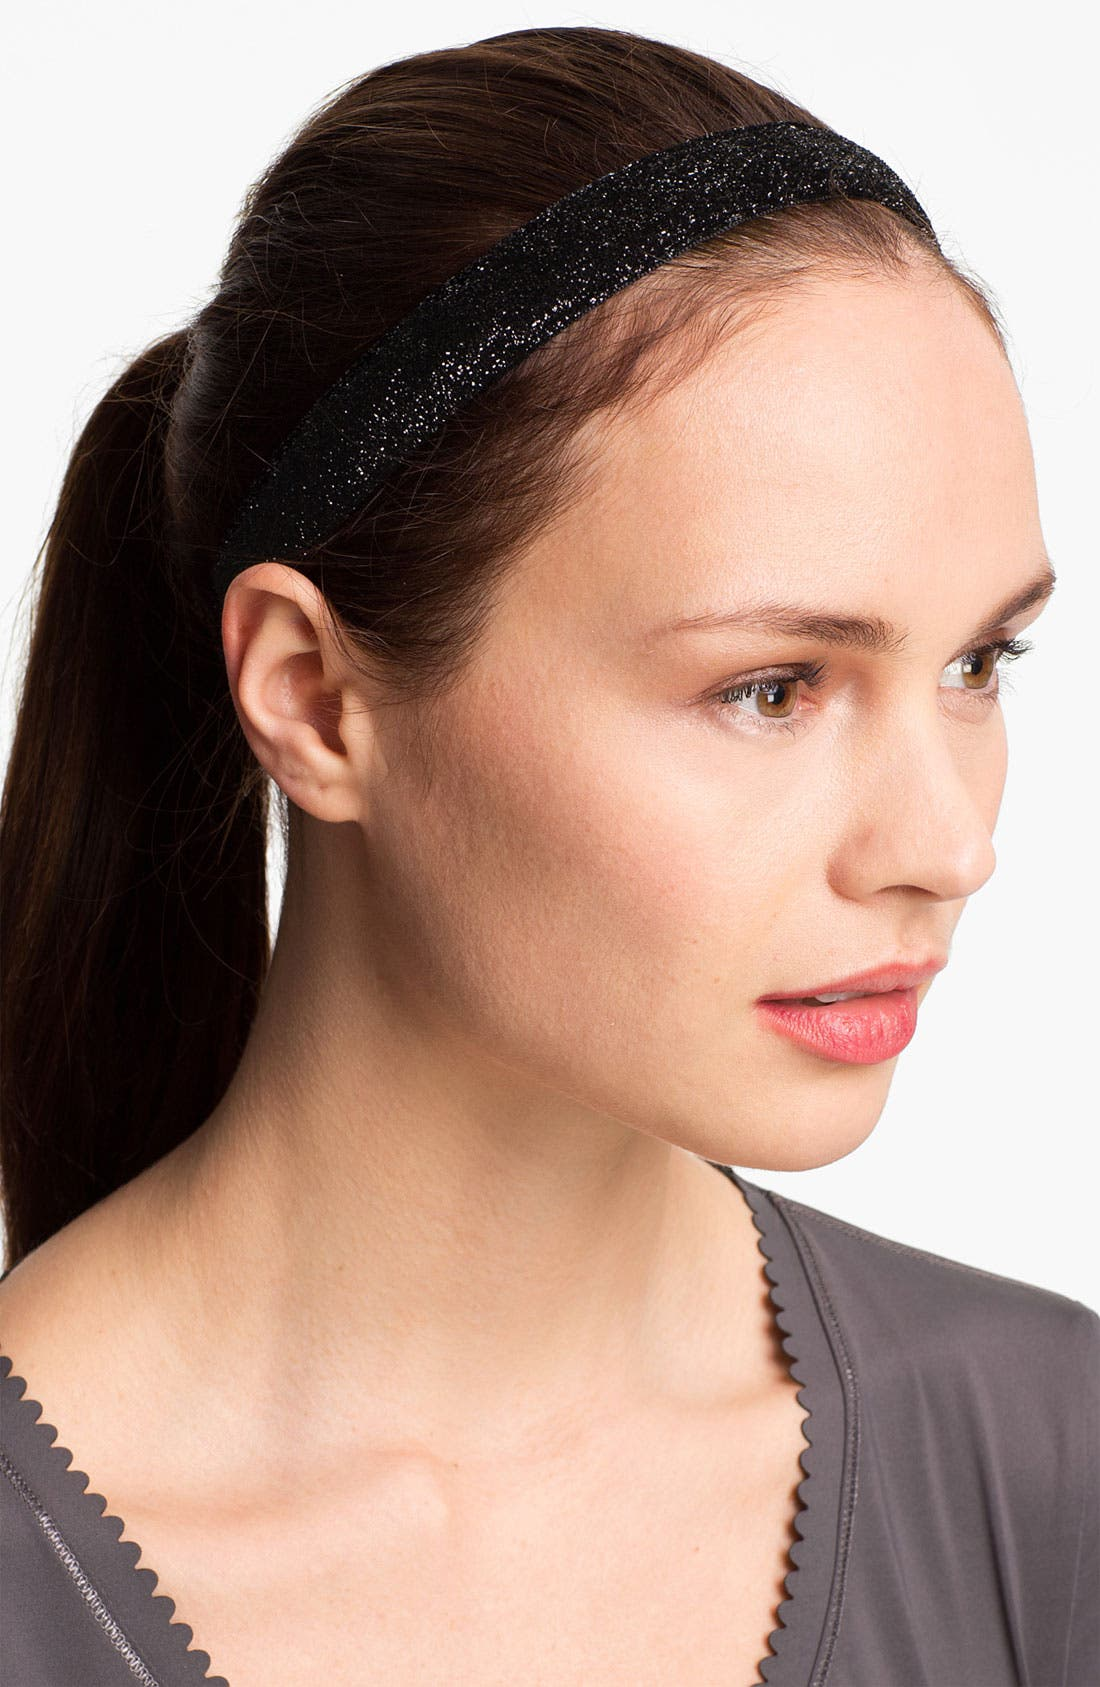 'Viva Diva' Head Wrap,                         Main,                         color, Black